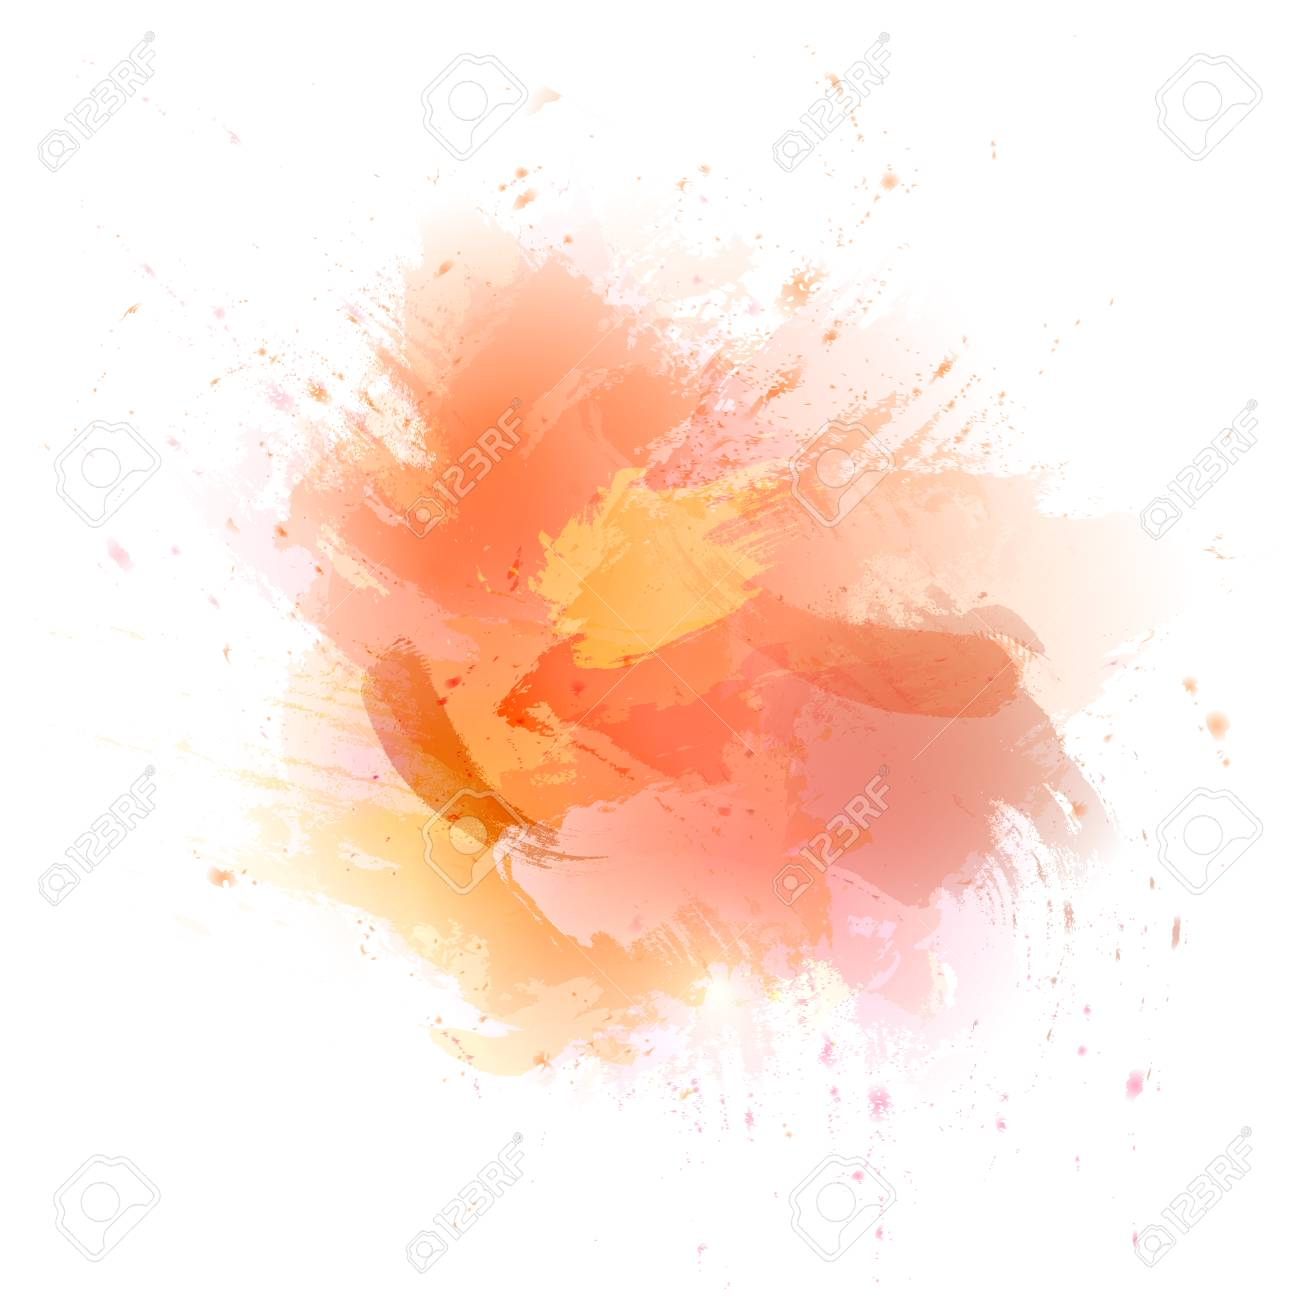 Abstract Orange Vector Watercolor Background The Color Splashing